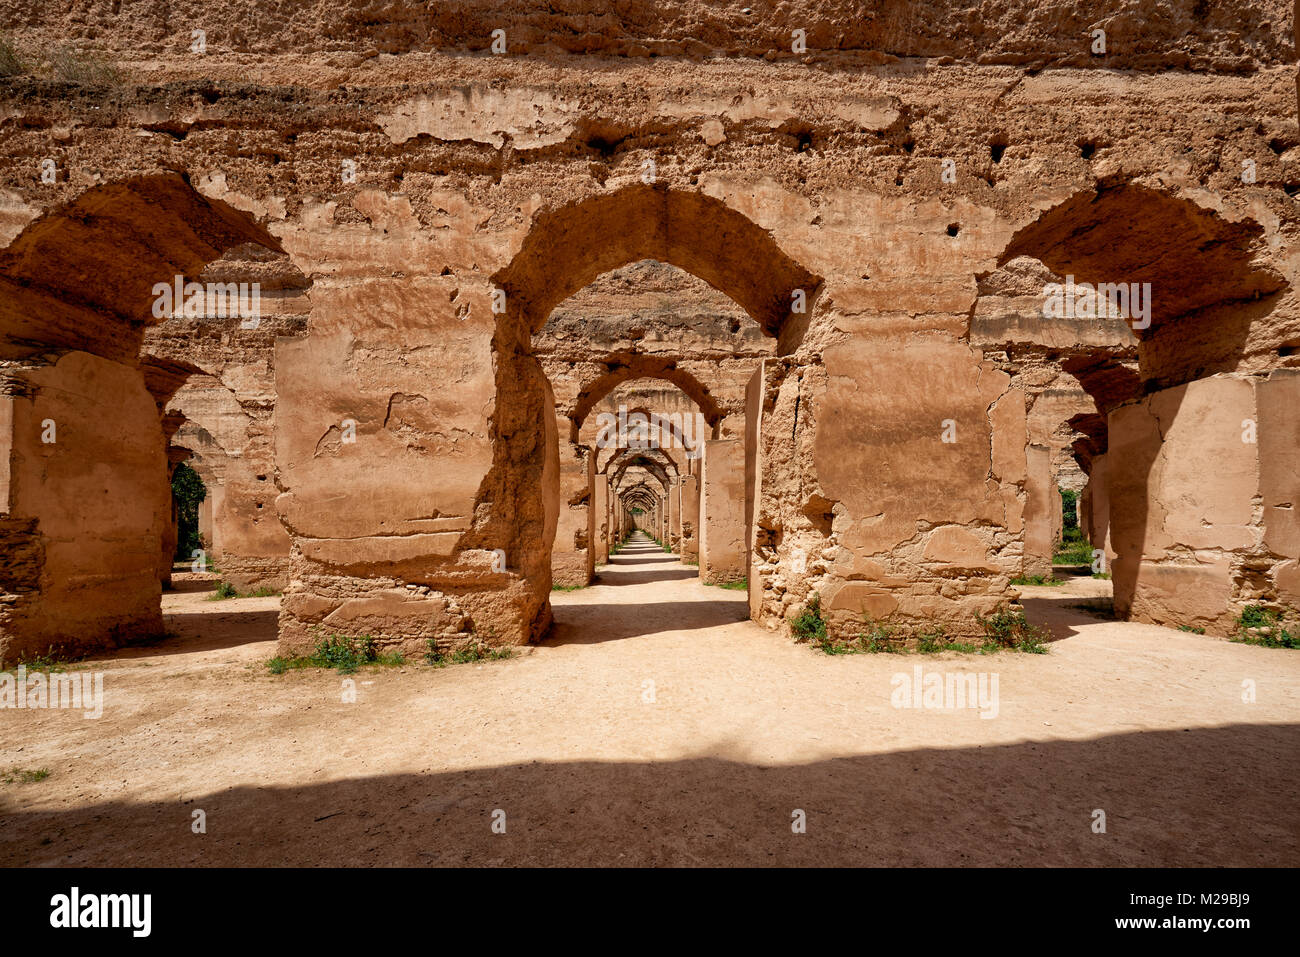 Heri es-Souani, Imperial Royal Stables, Meknes, Morocco, Africa - Stock Image